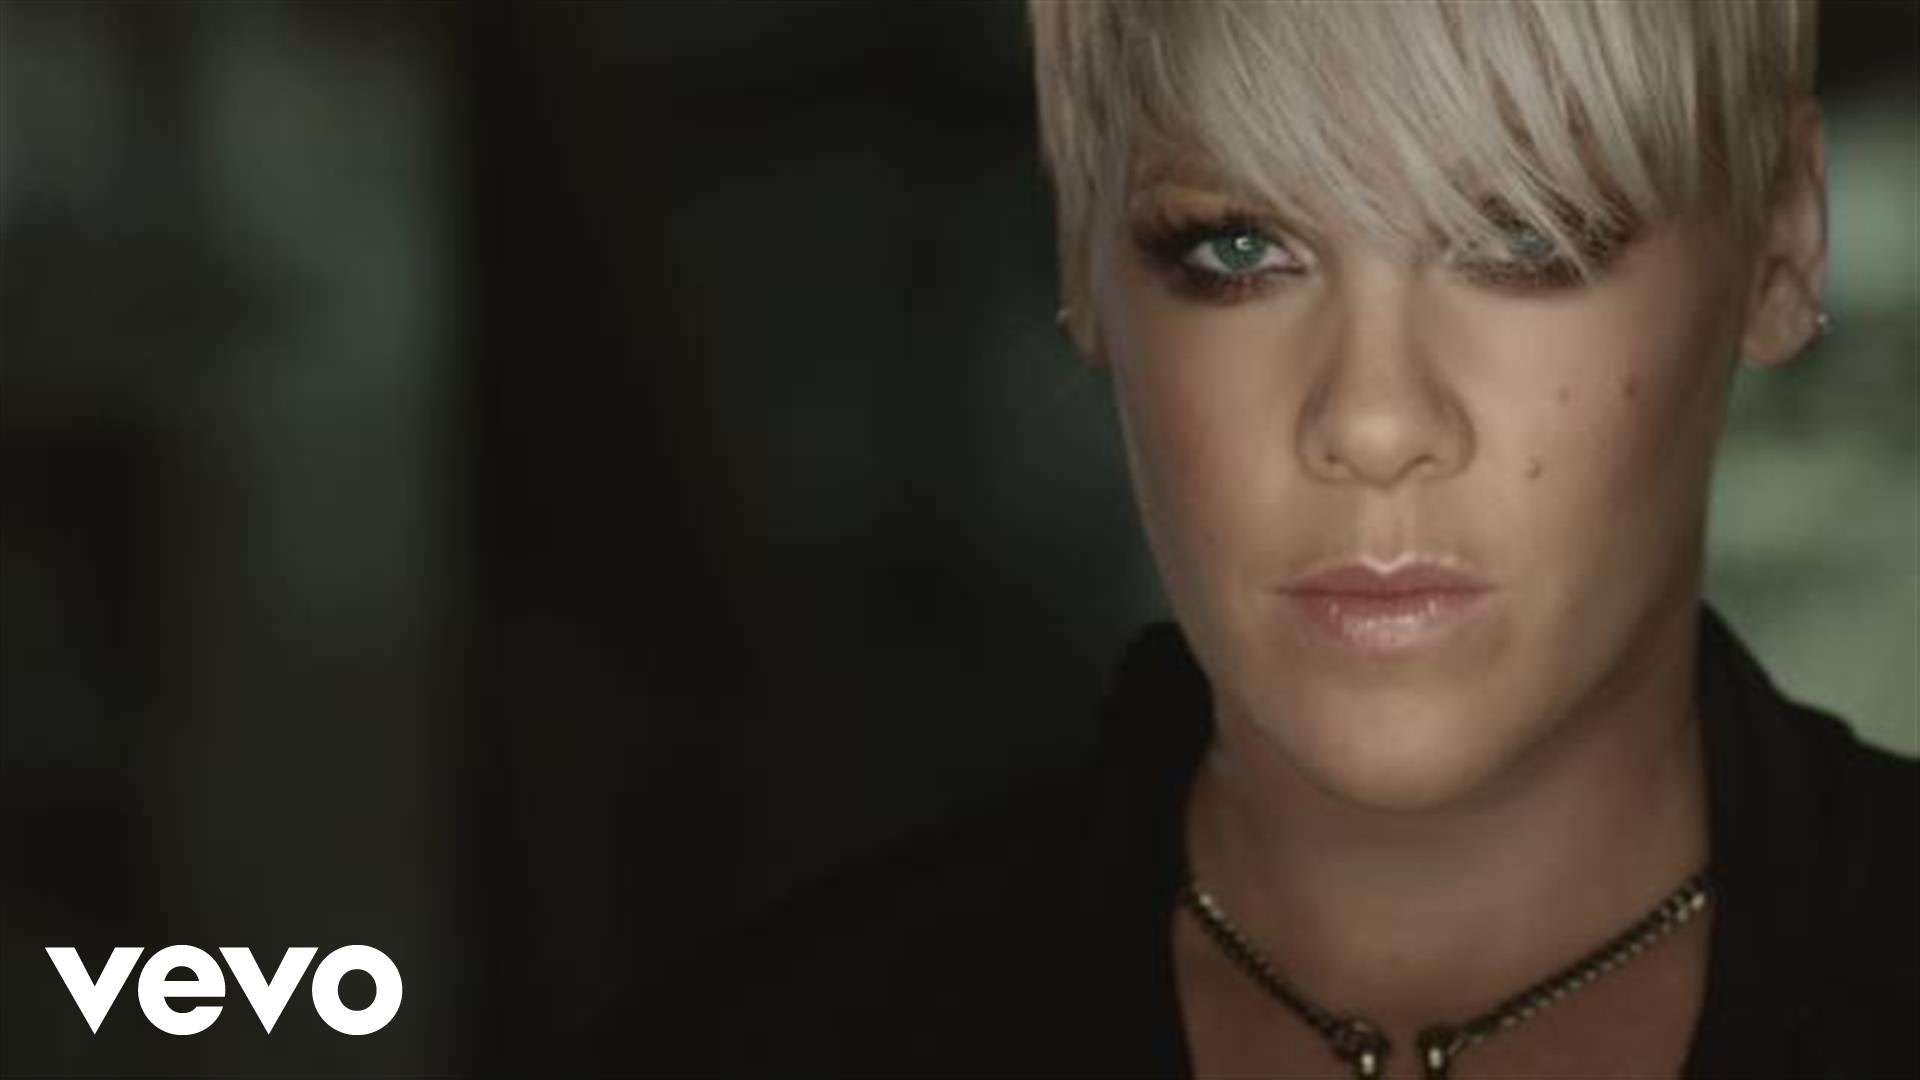 P!nk - F**kin' Perfect - YouTube